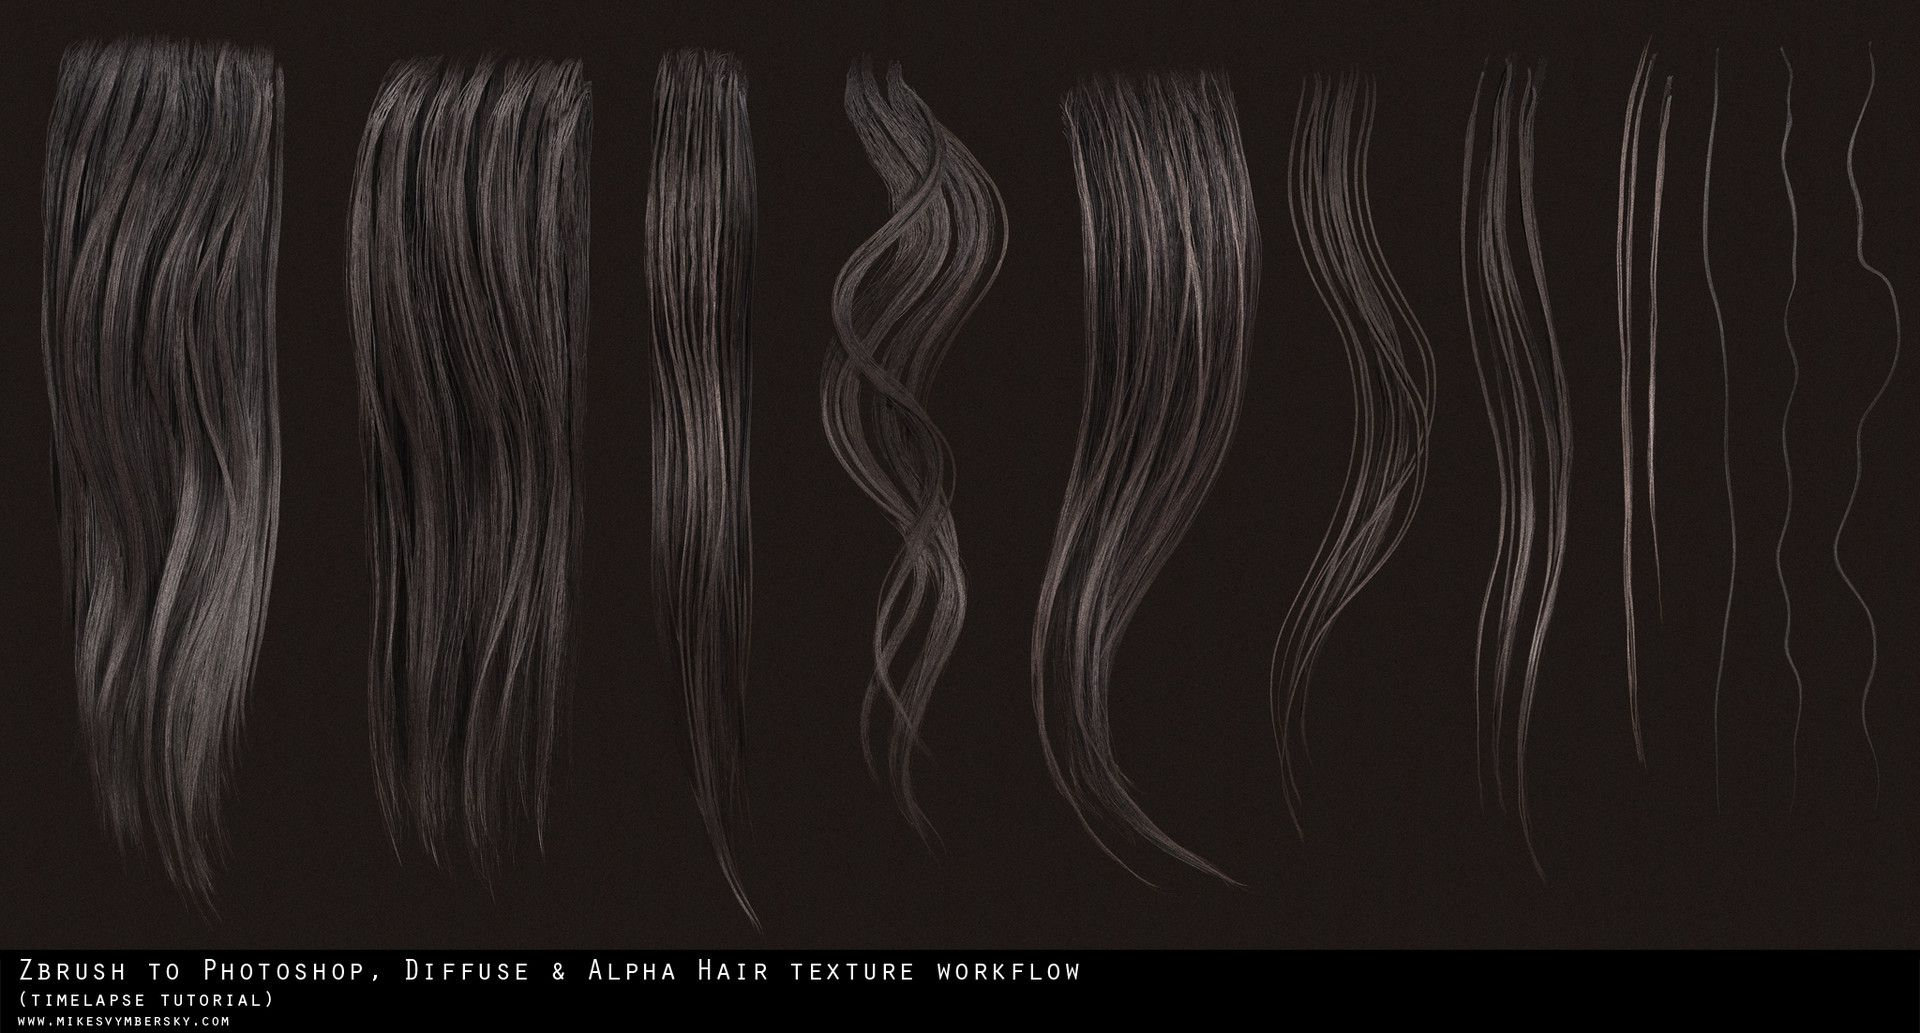 Artstation Hair Texture Diffuse Alpha Tutorial Mike Svymbersky Zbrush Hair Textured Hair Photoshop Hair